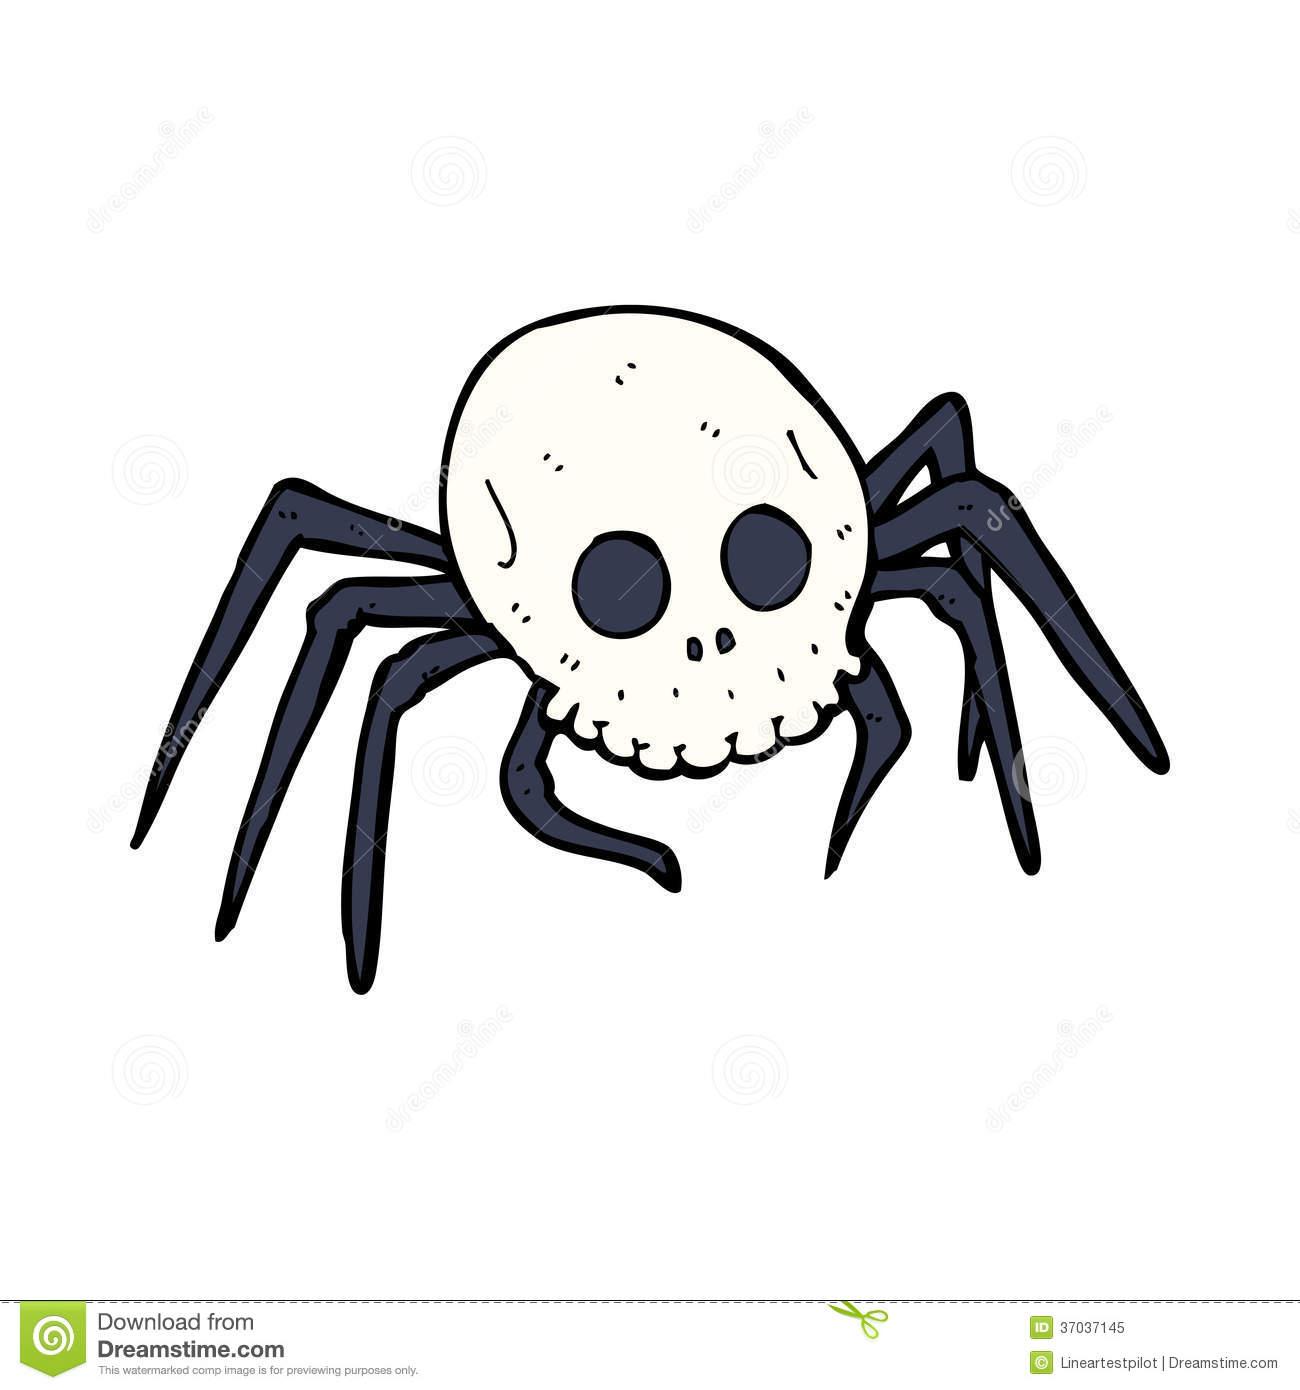 Cartoon Spooky Halloween Skull Spider Royalty Free Stock ...